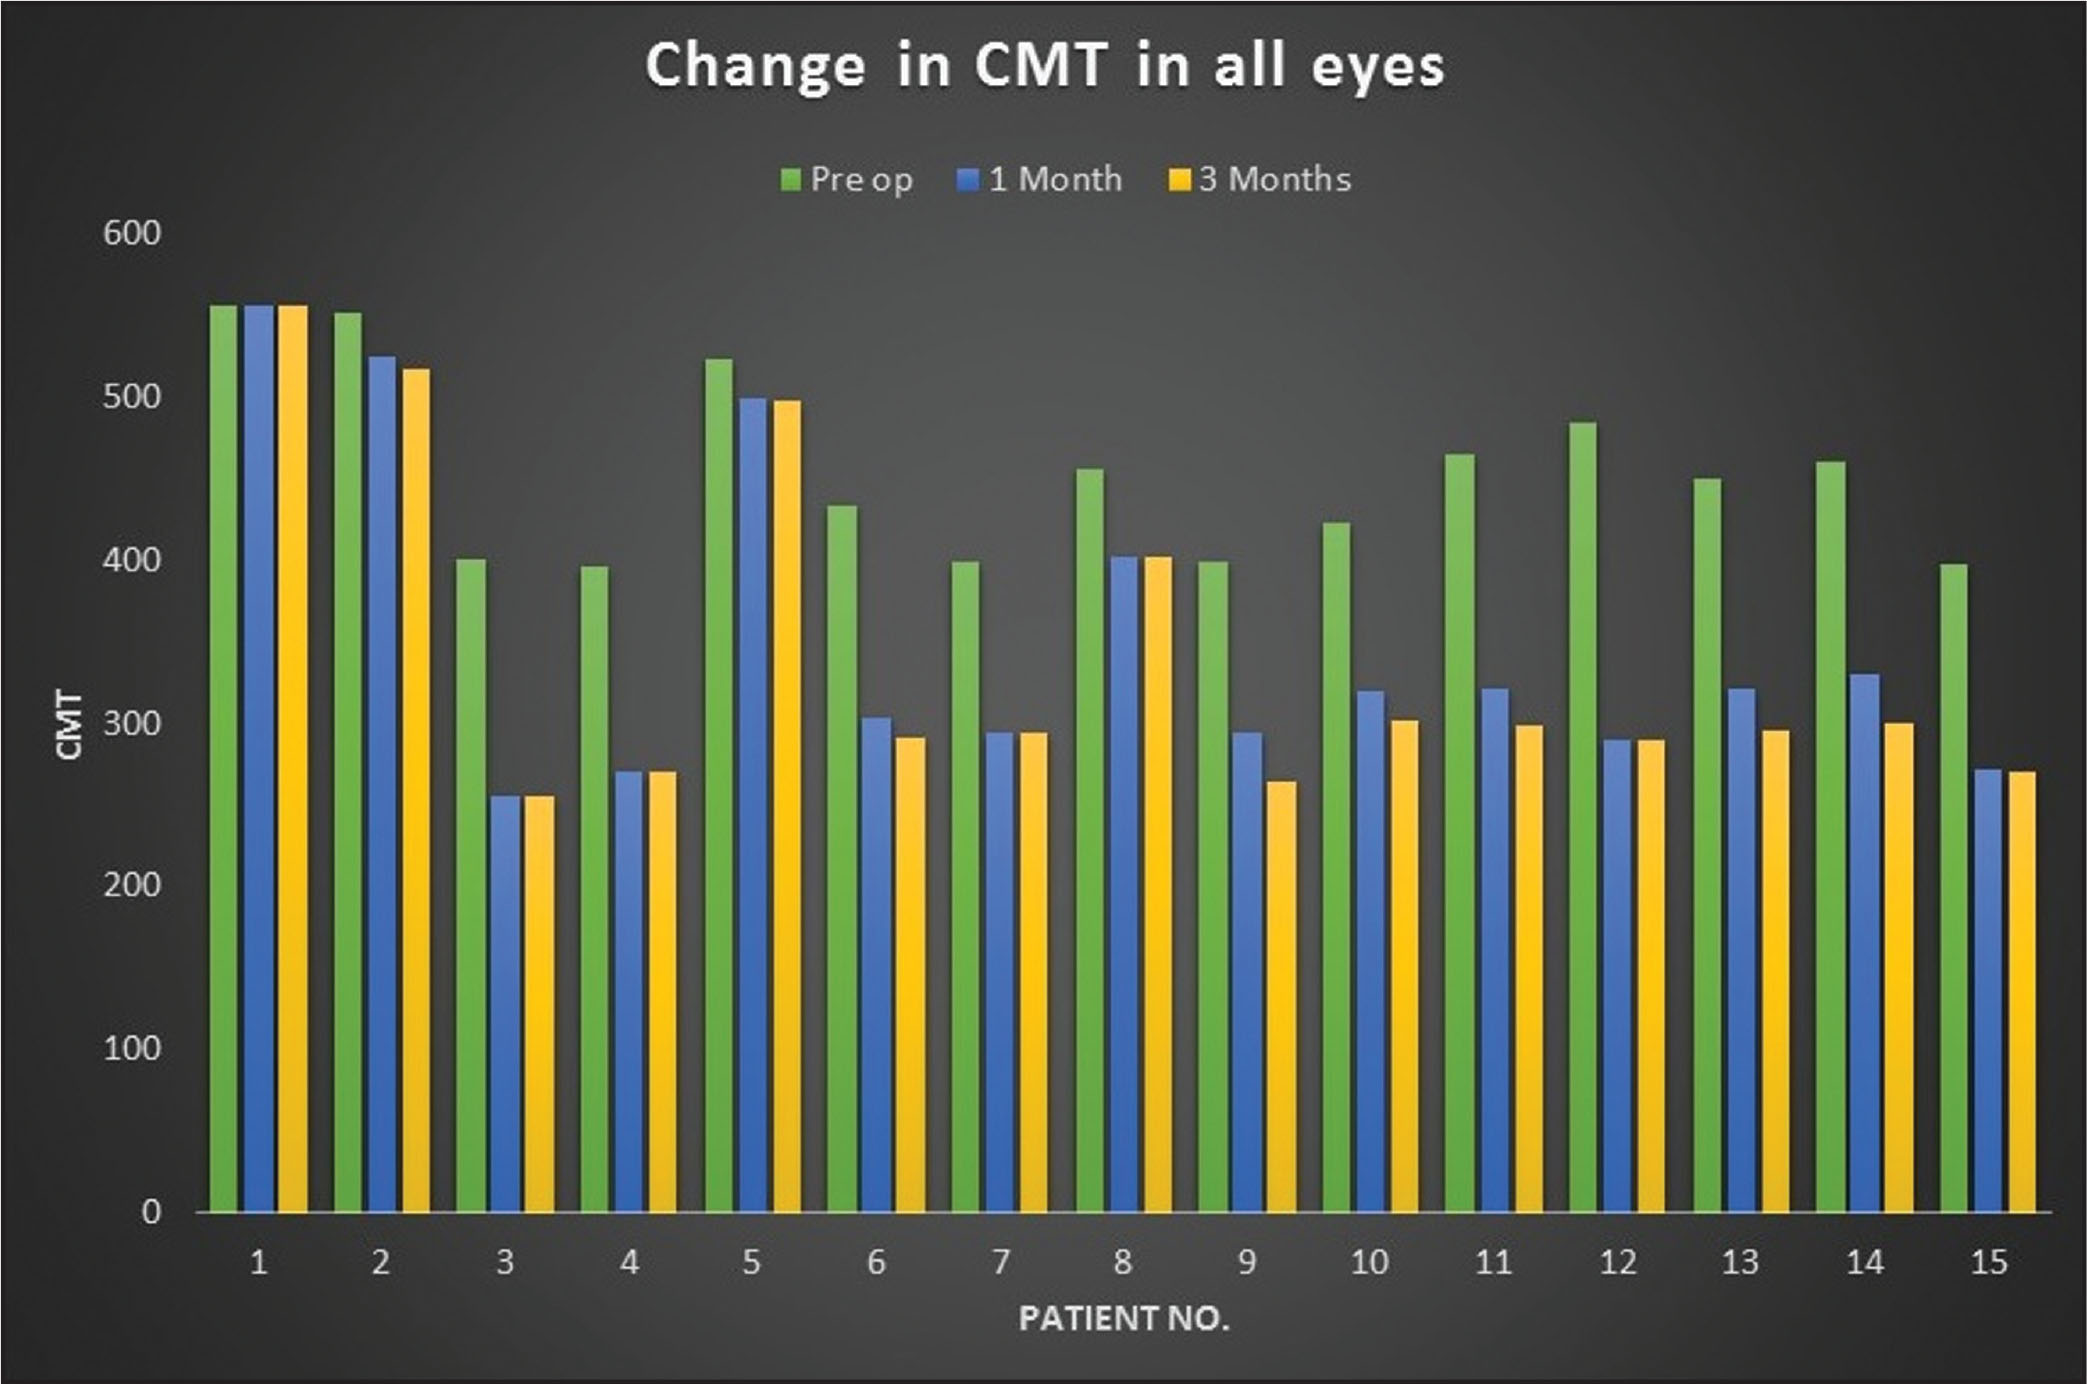 Change in central macular thickness from baseline to 1 month and 3 months in all 15 eyes.